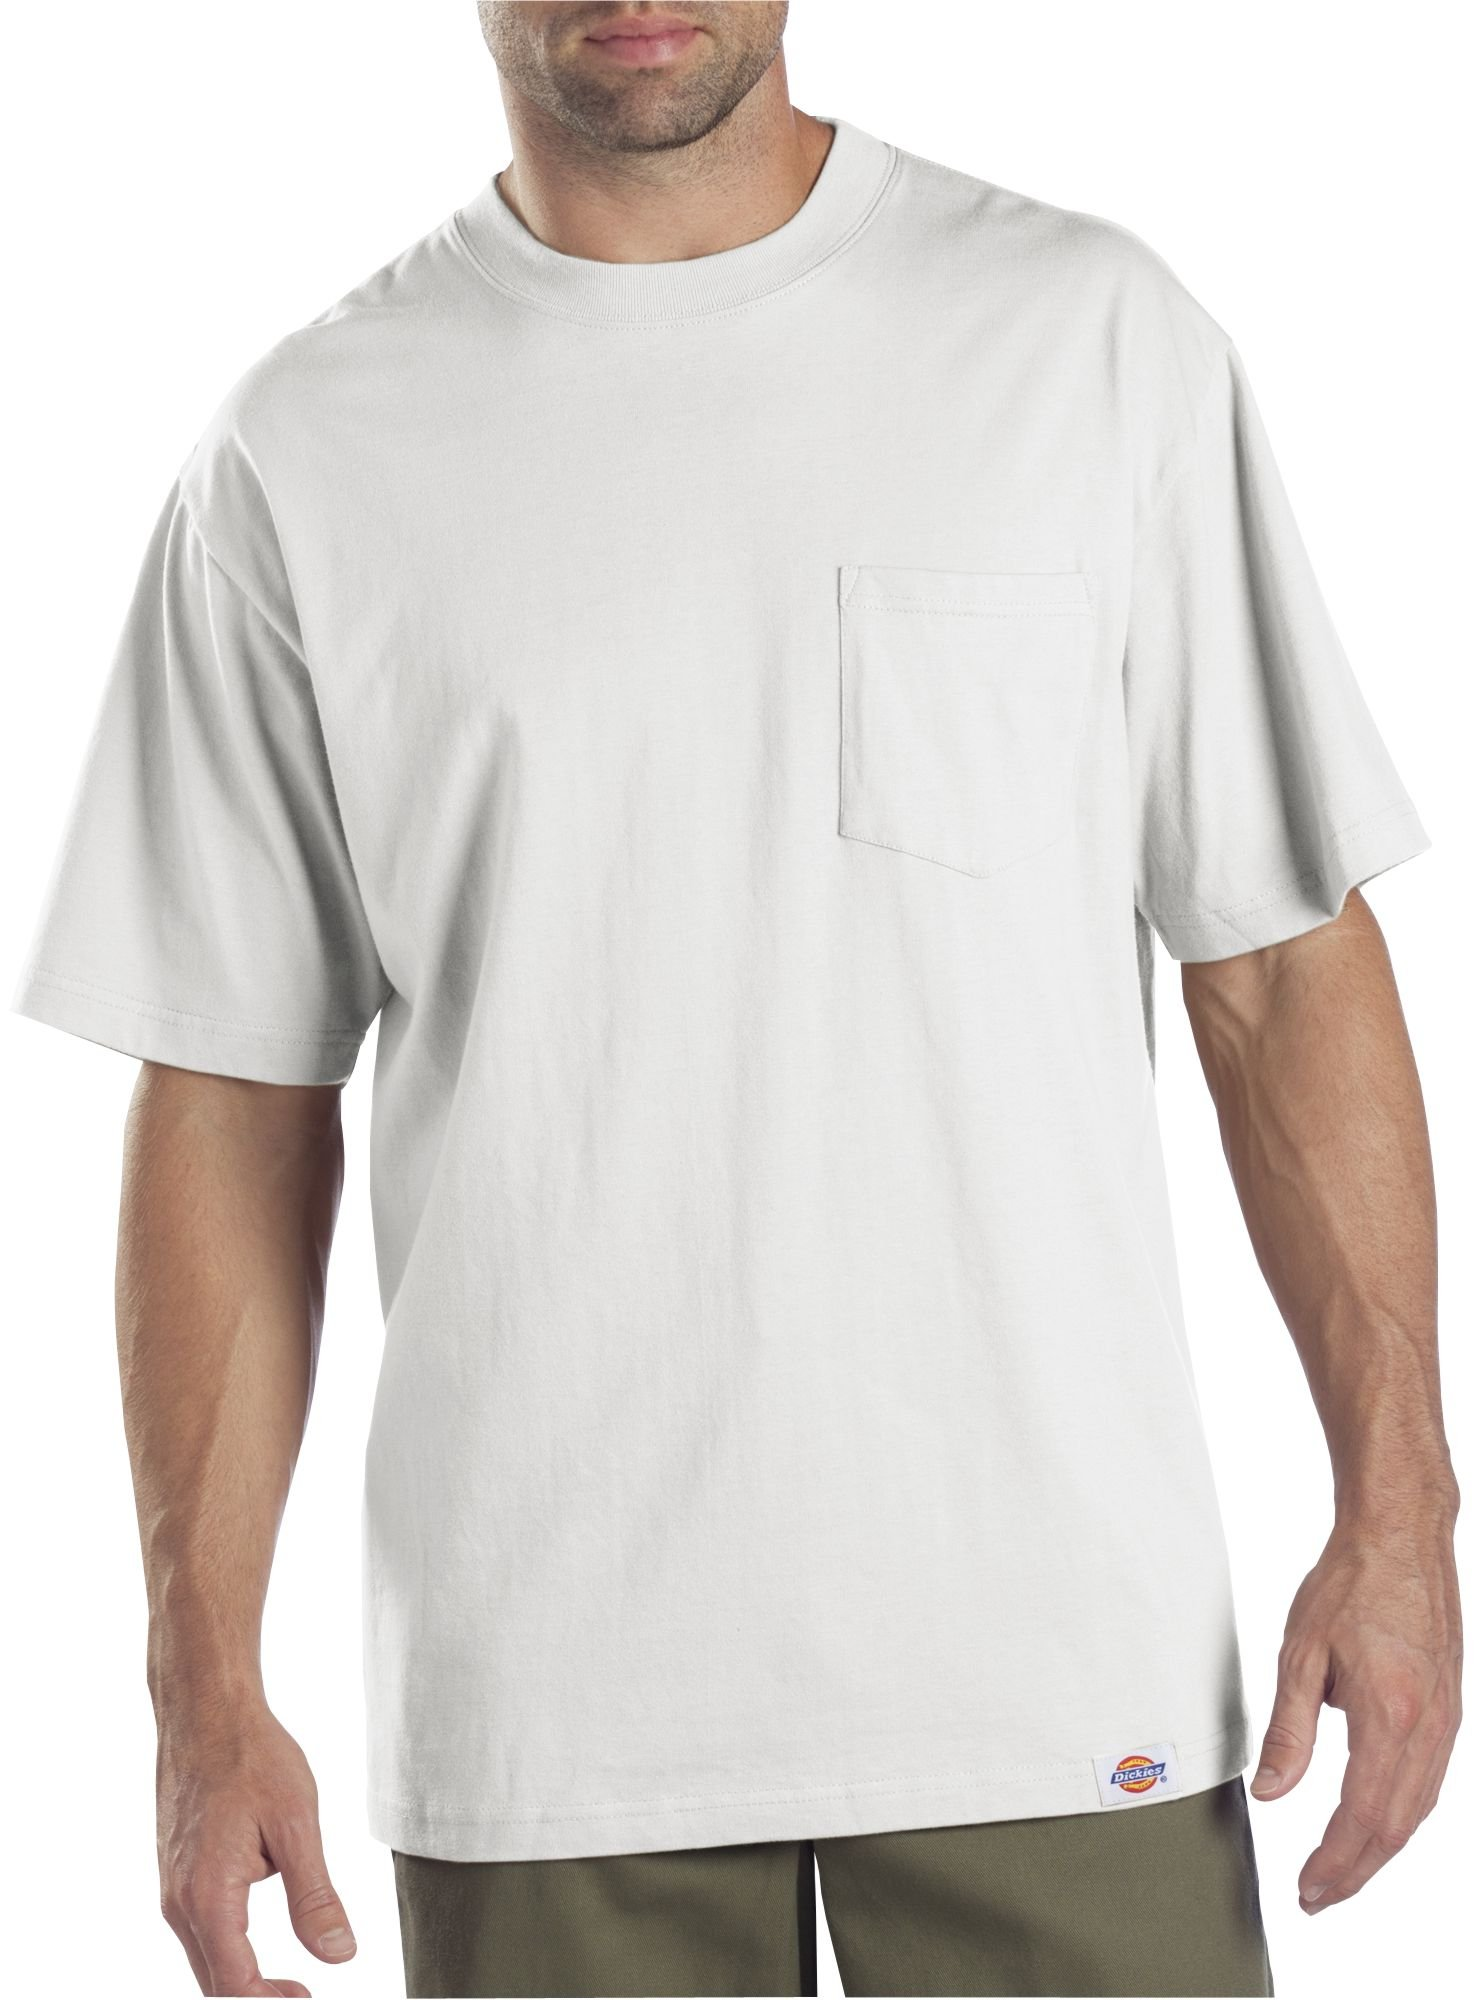 Dickies Men's Short Sleeve Pocket T-Shirts Two-Pack, White, 4X